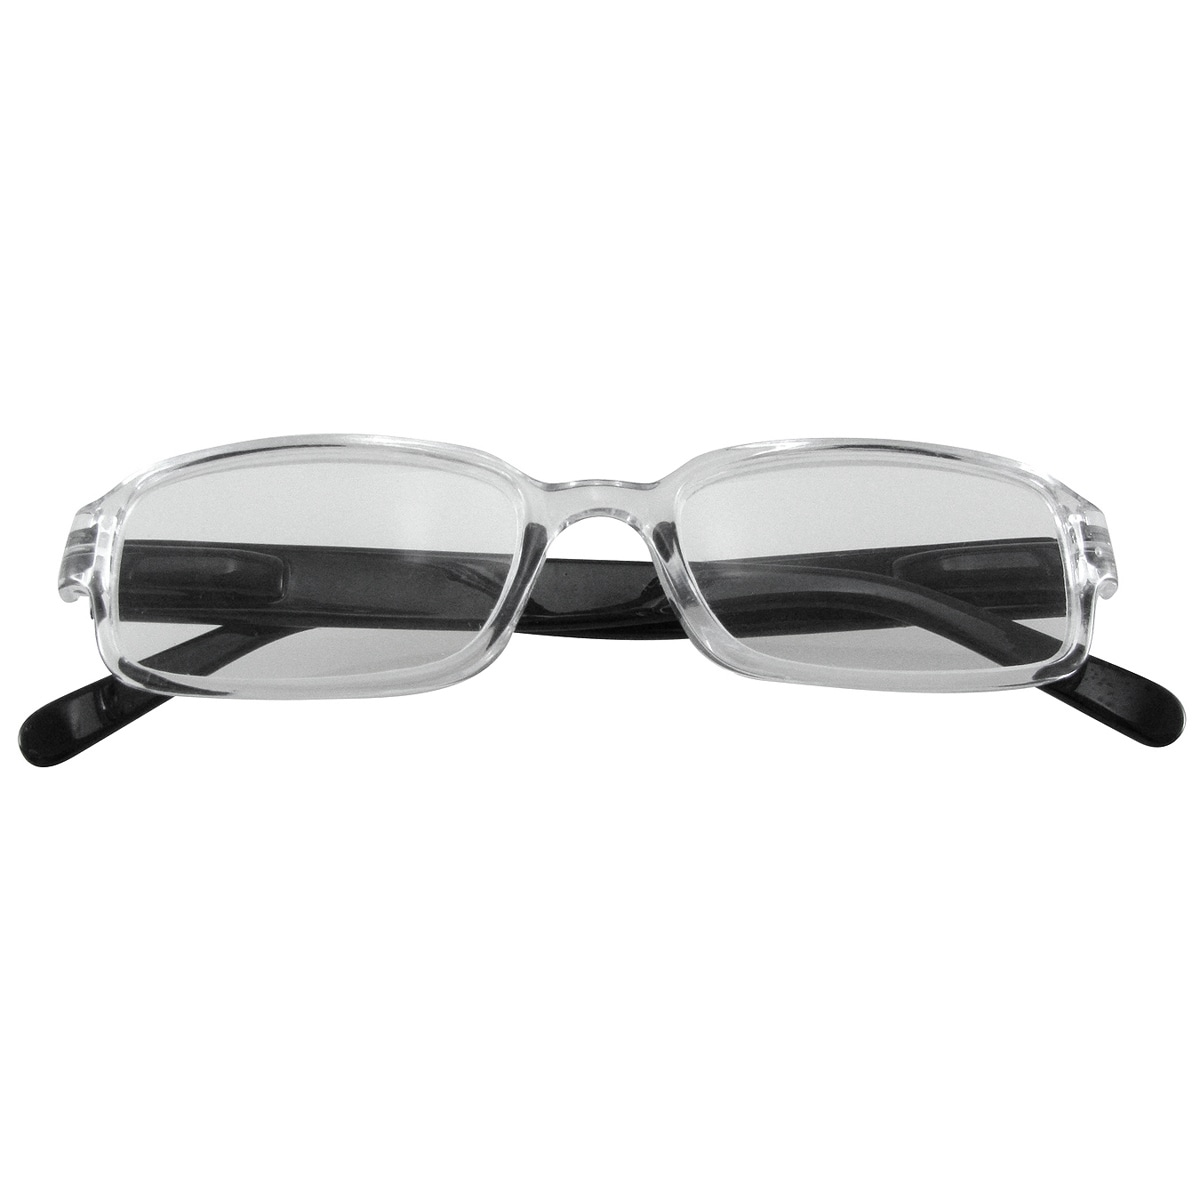 E-specs by Evolutioneyes Black Computer Glasses